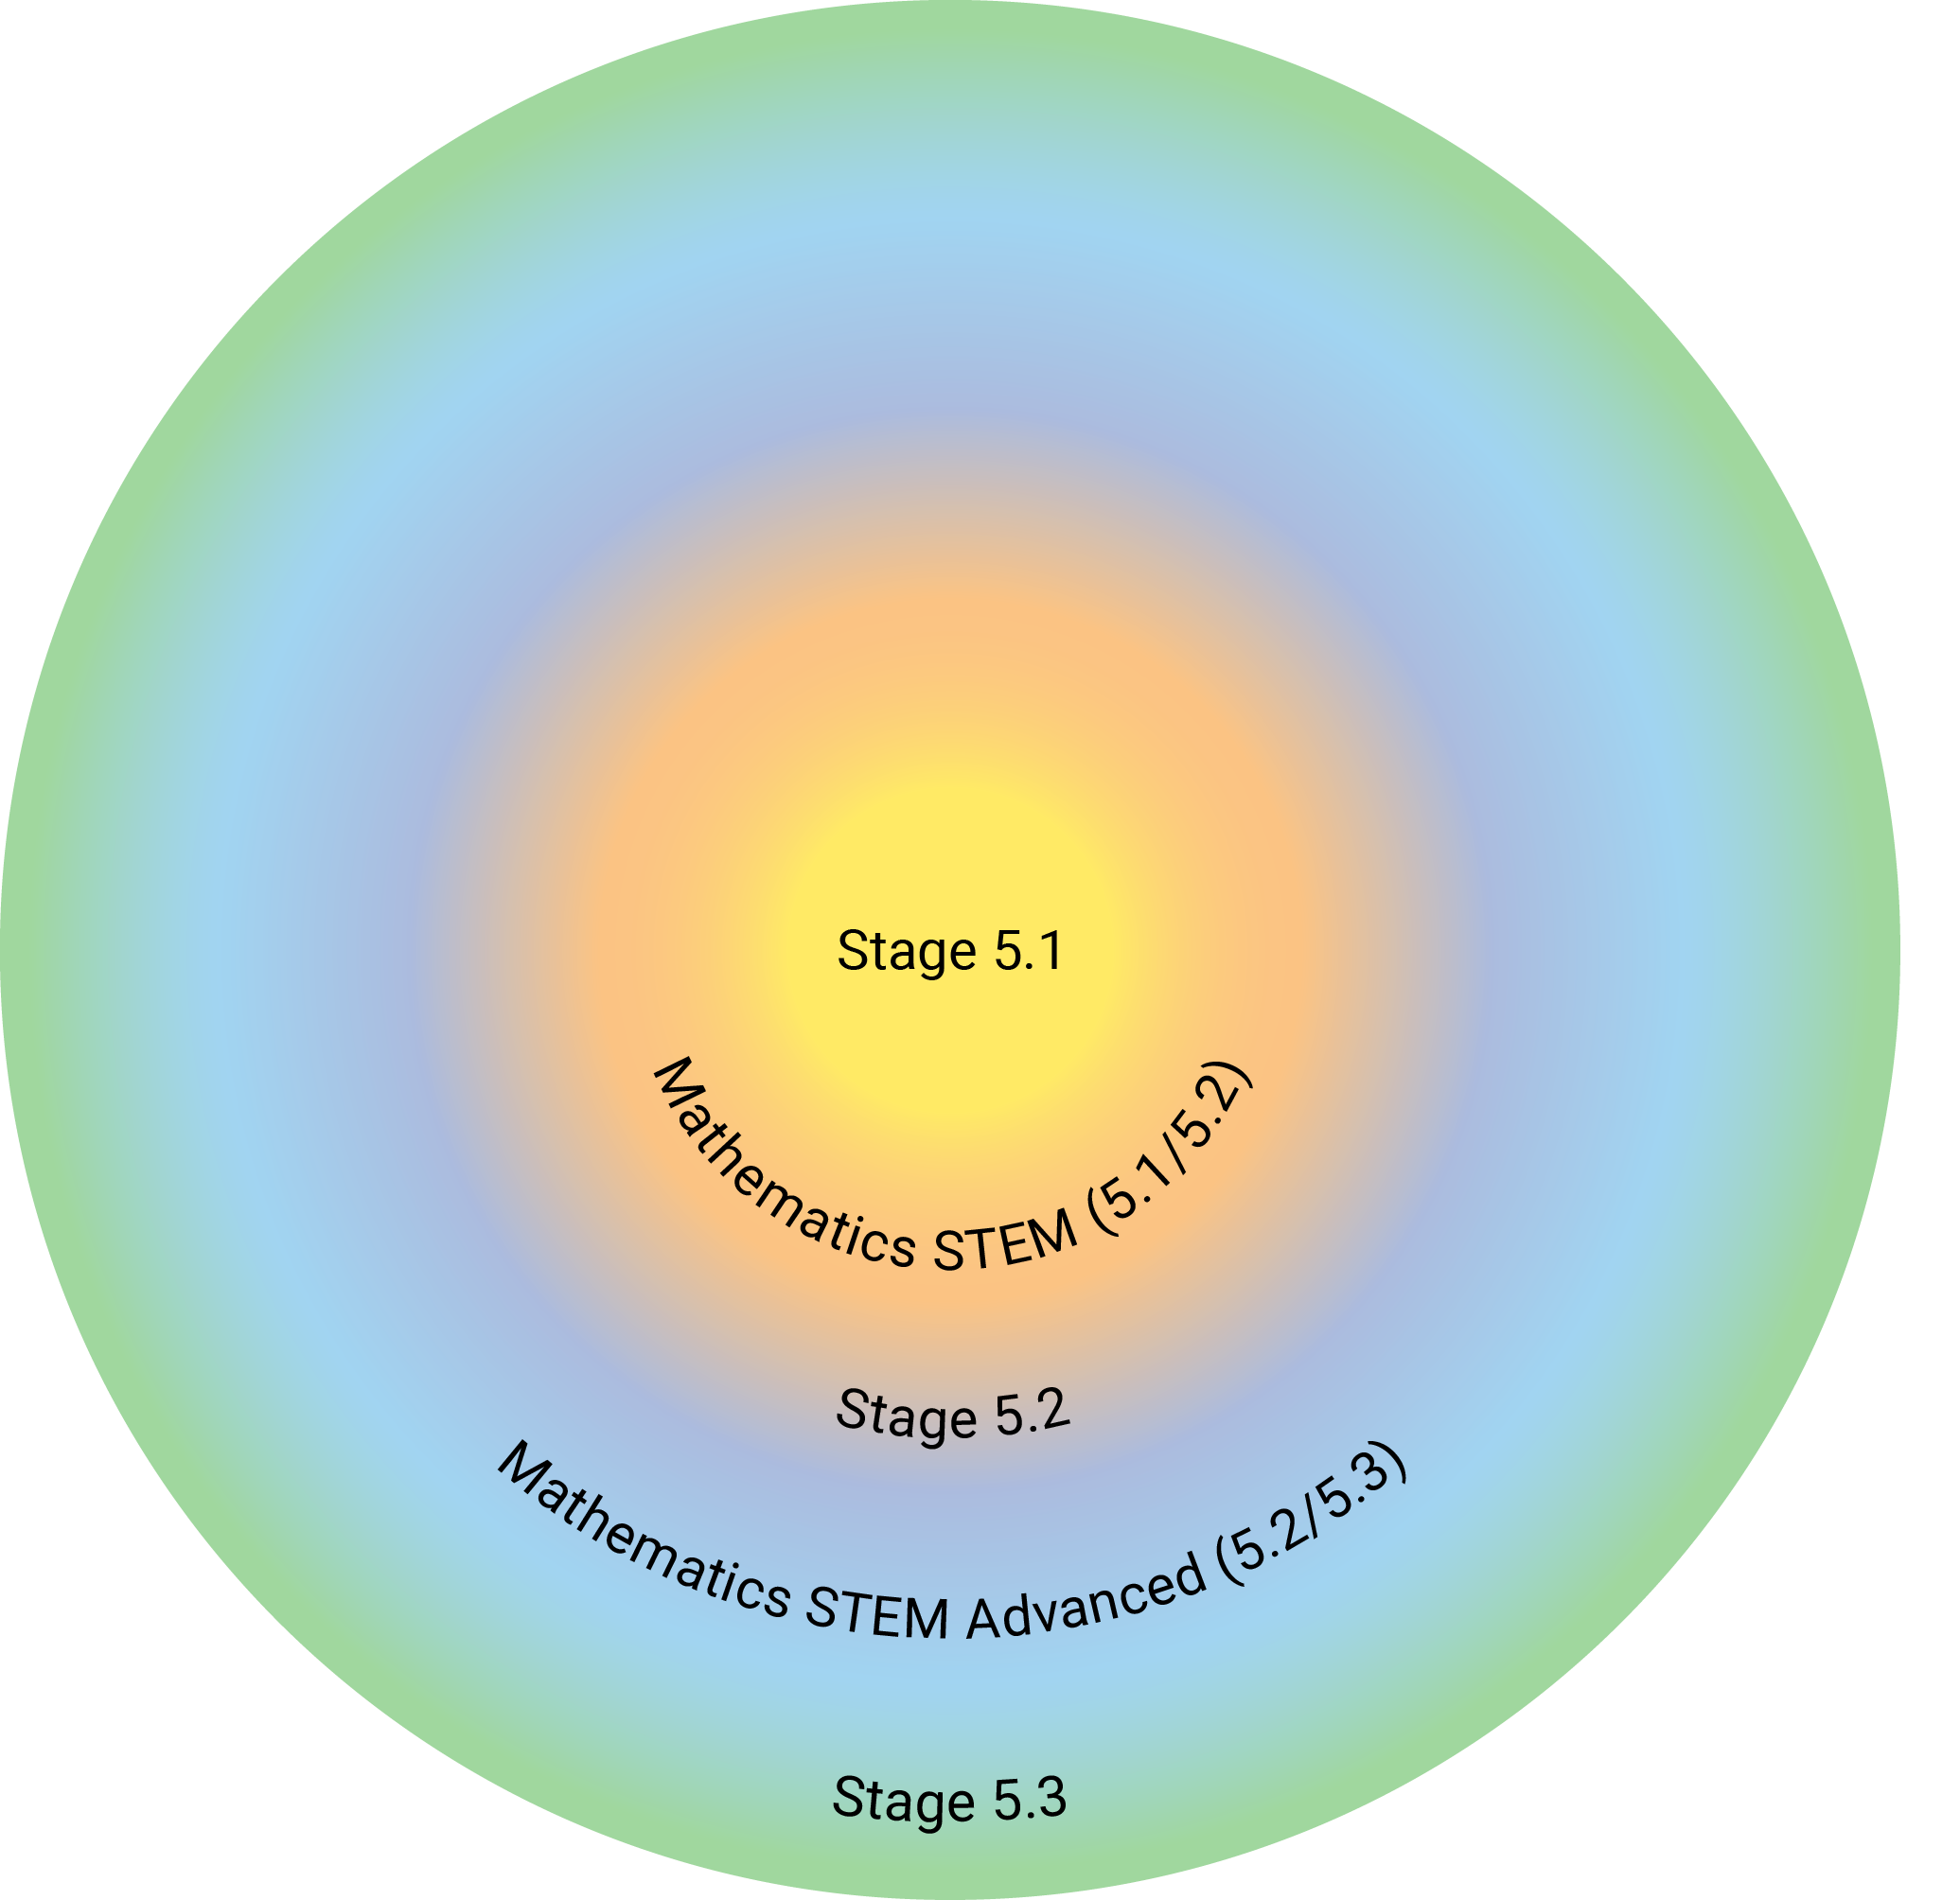 This diagram shows the relationship between Stage 5.1, 5.2 and 5.3 outcomes.